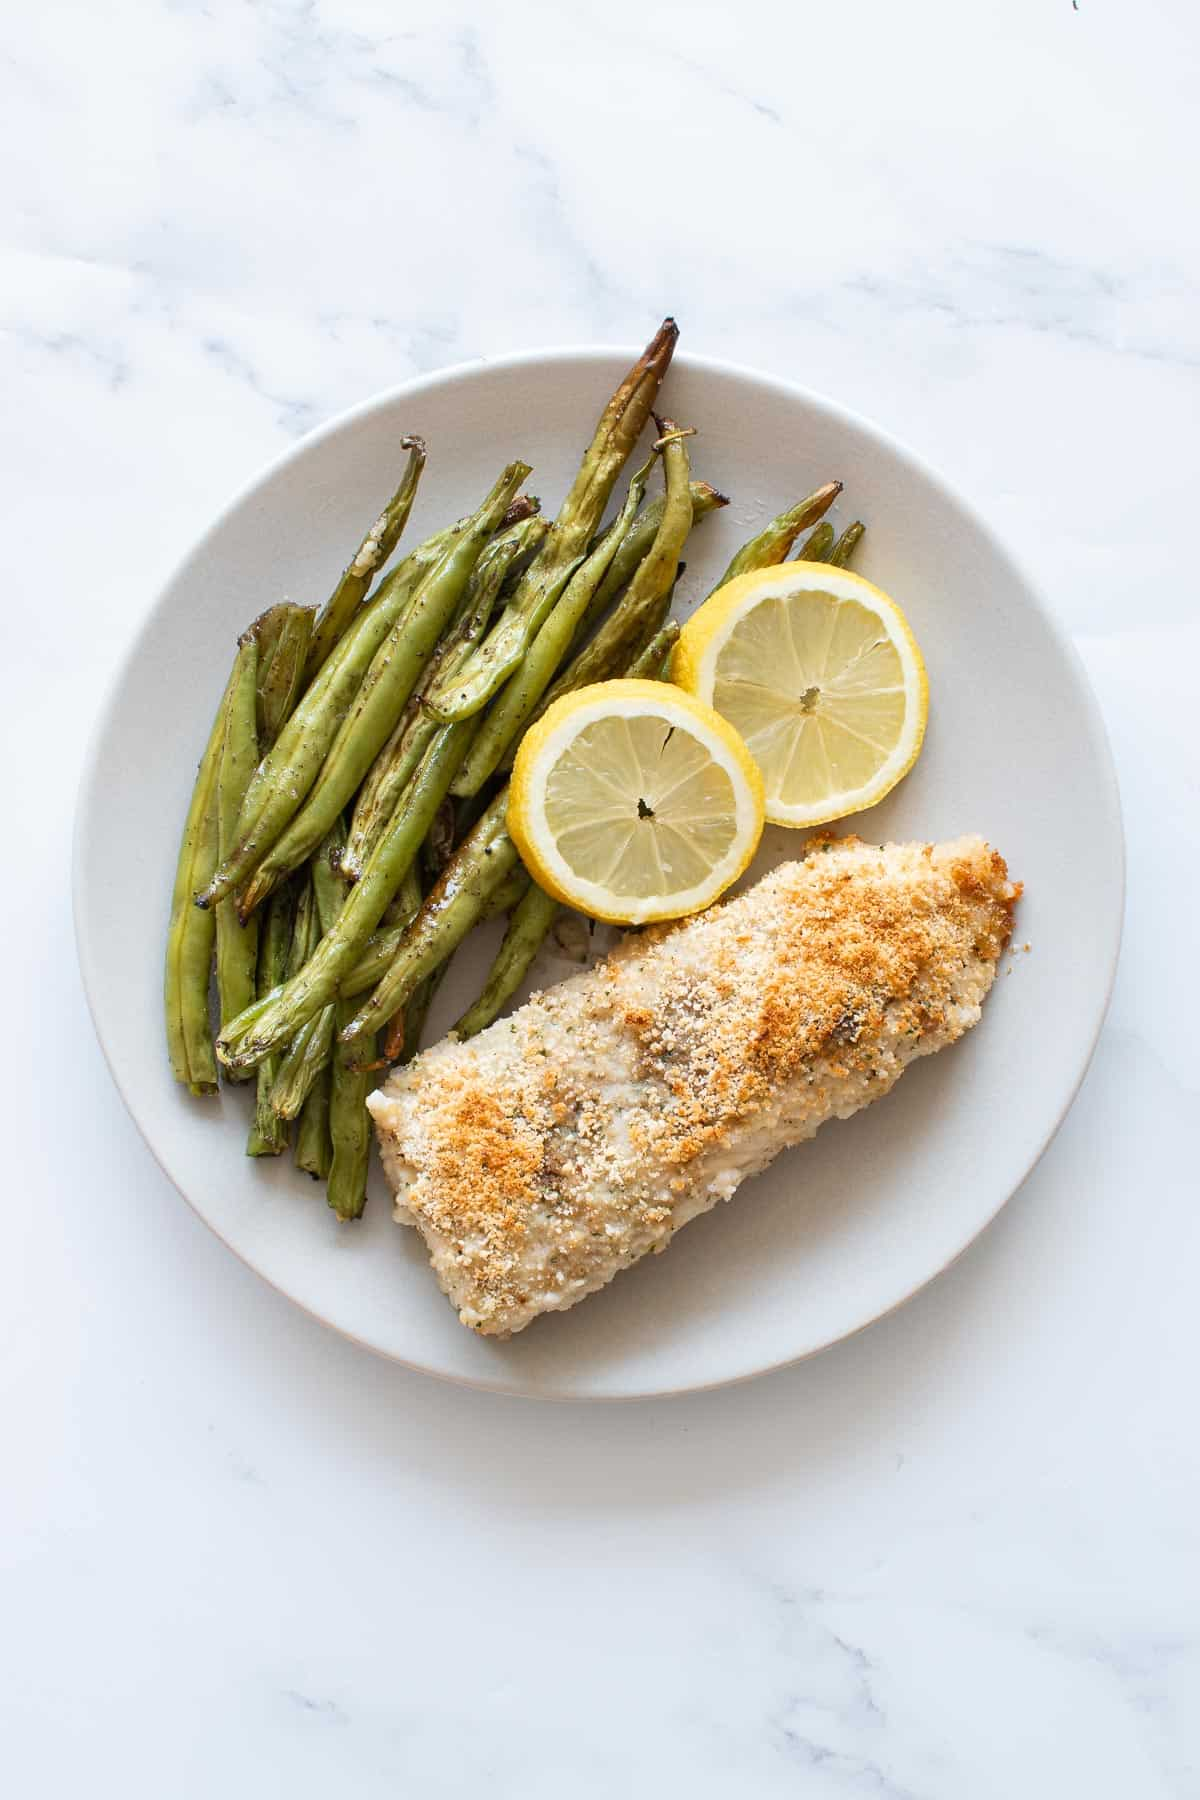 Baked haddock with lemon and green beans.